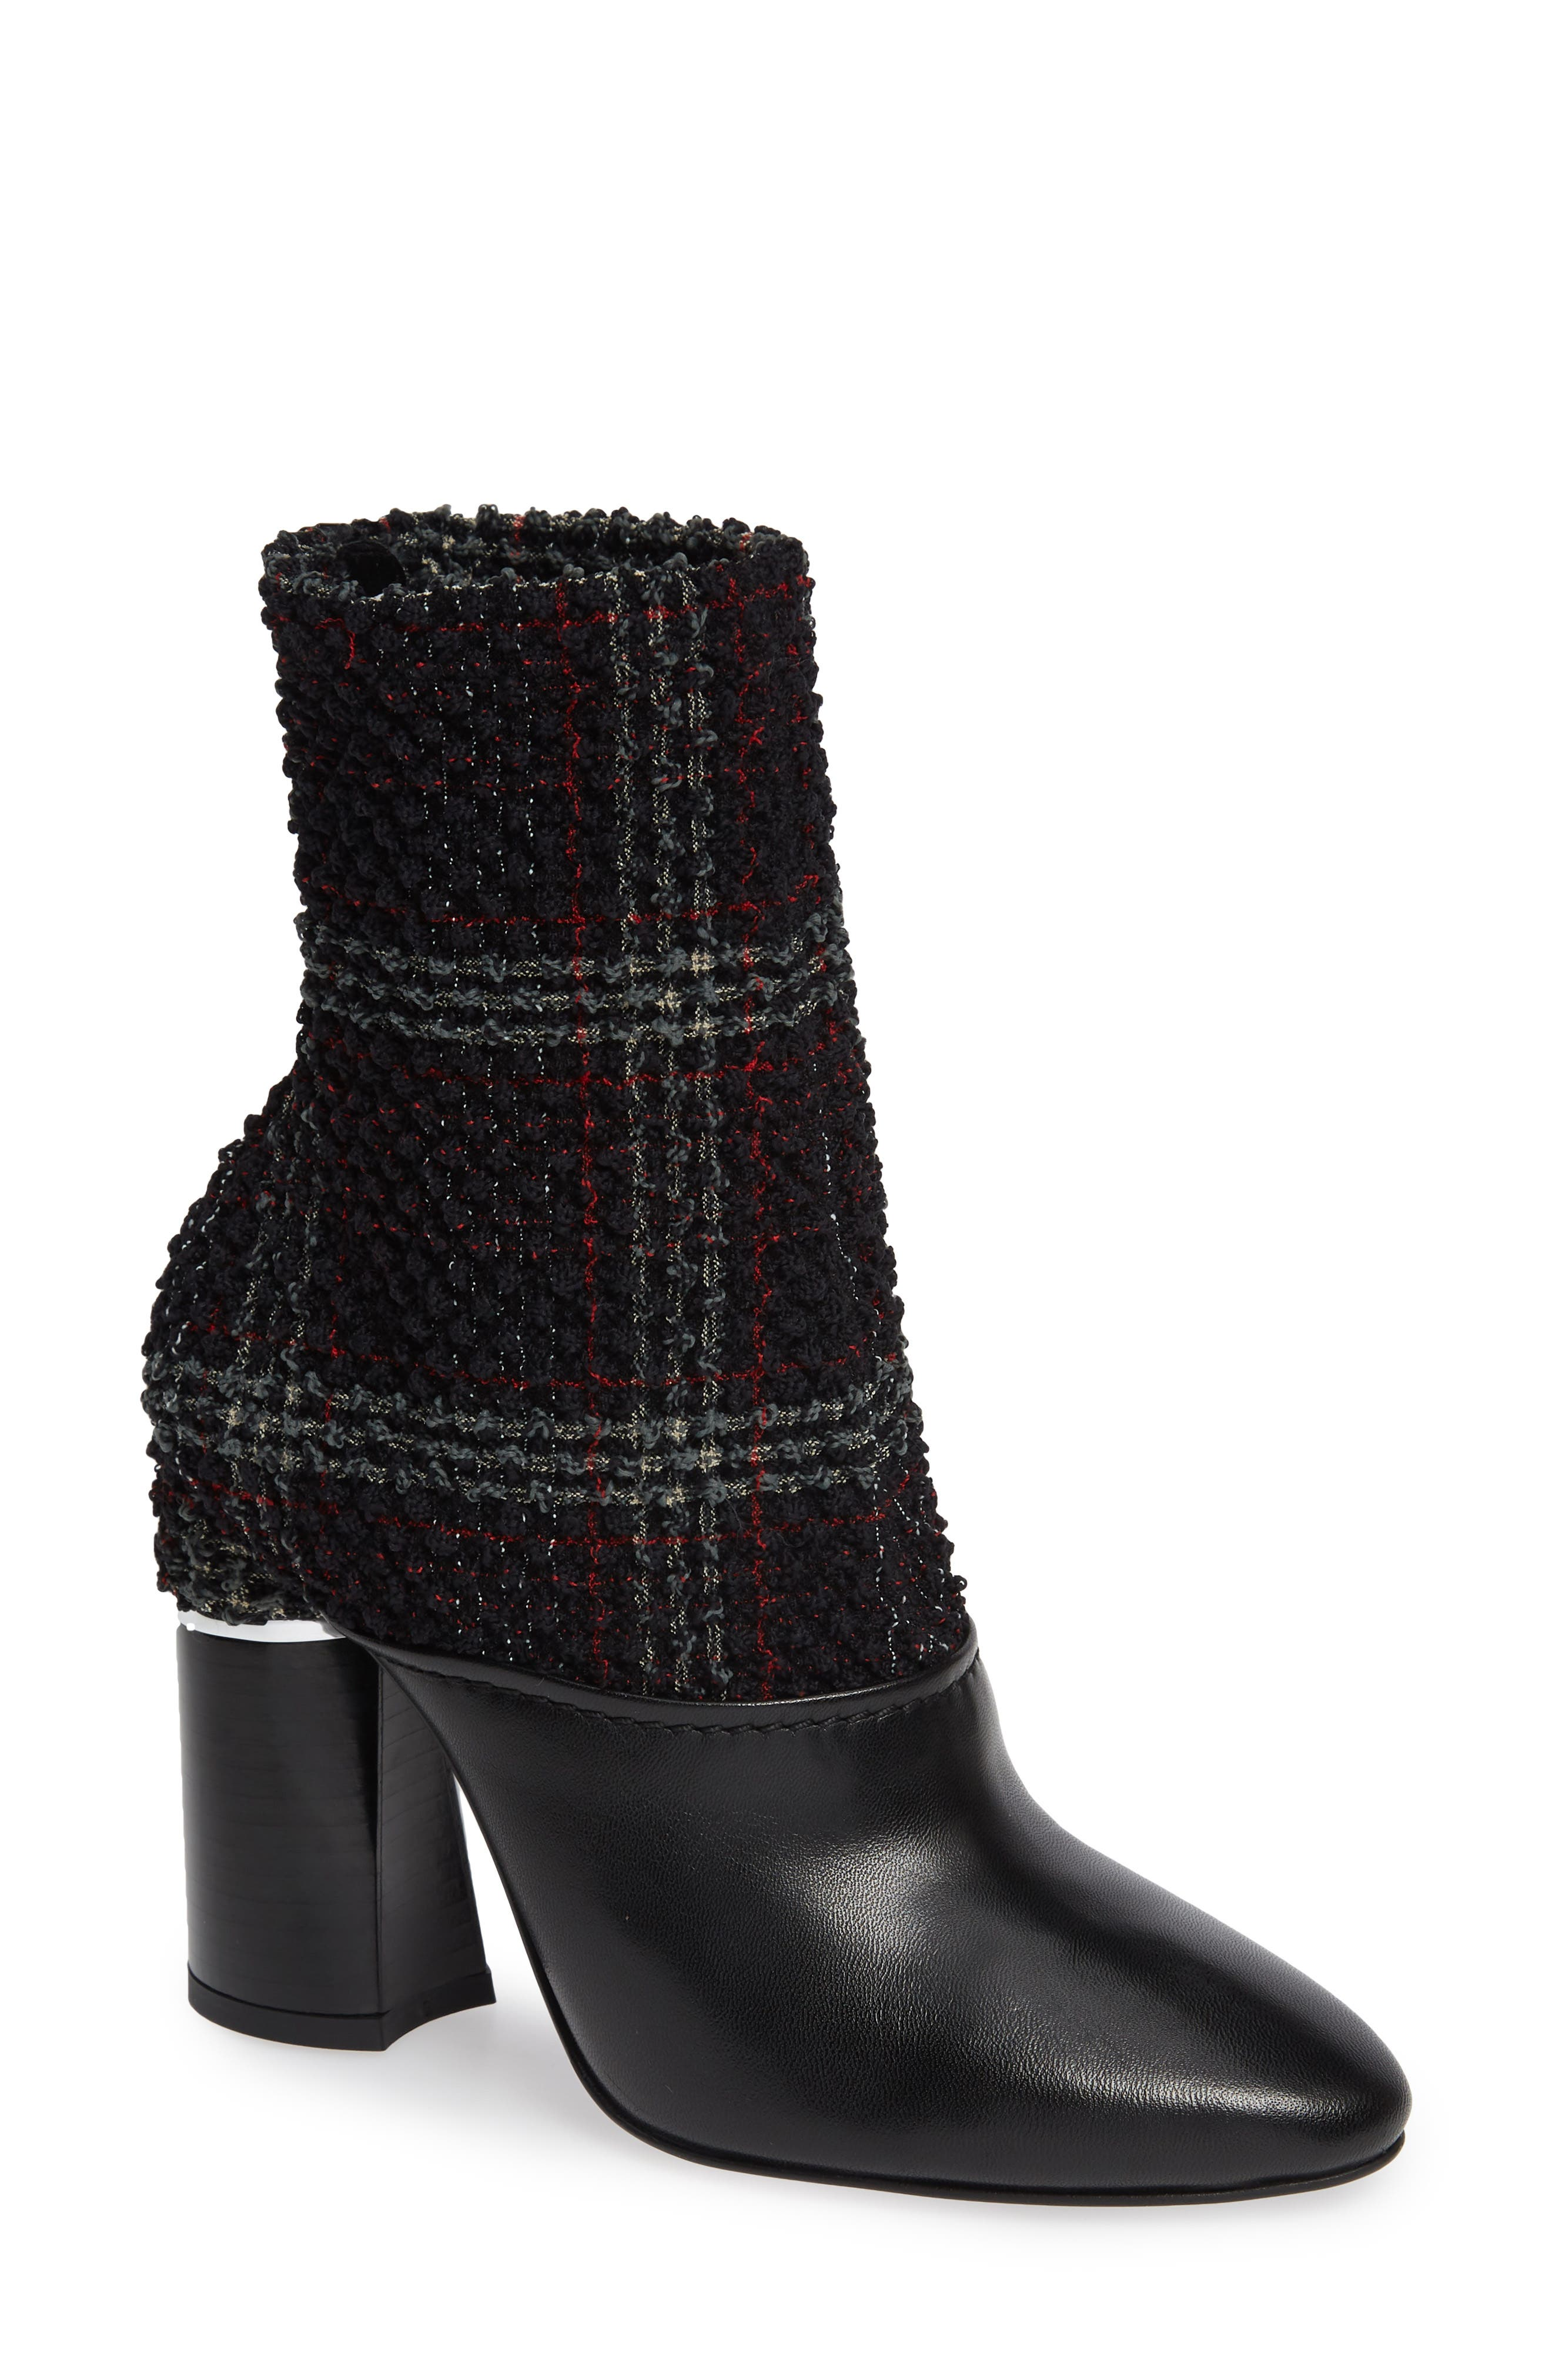 Kyoto Leather Bootie,                             Main thumbnail 1, color,                             BLACK/ GREEN/ RED CHECK